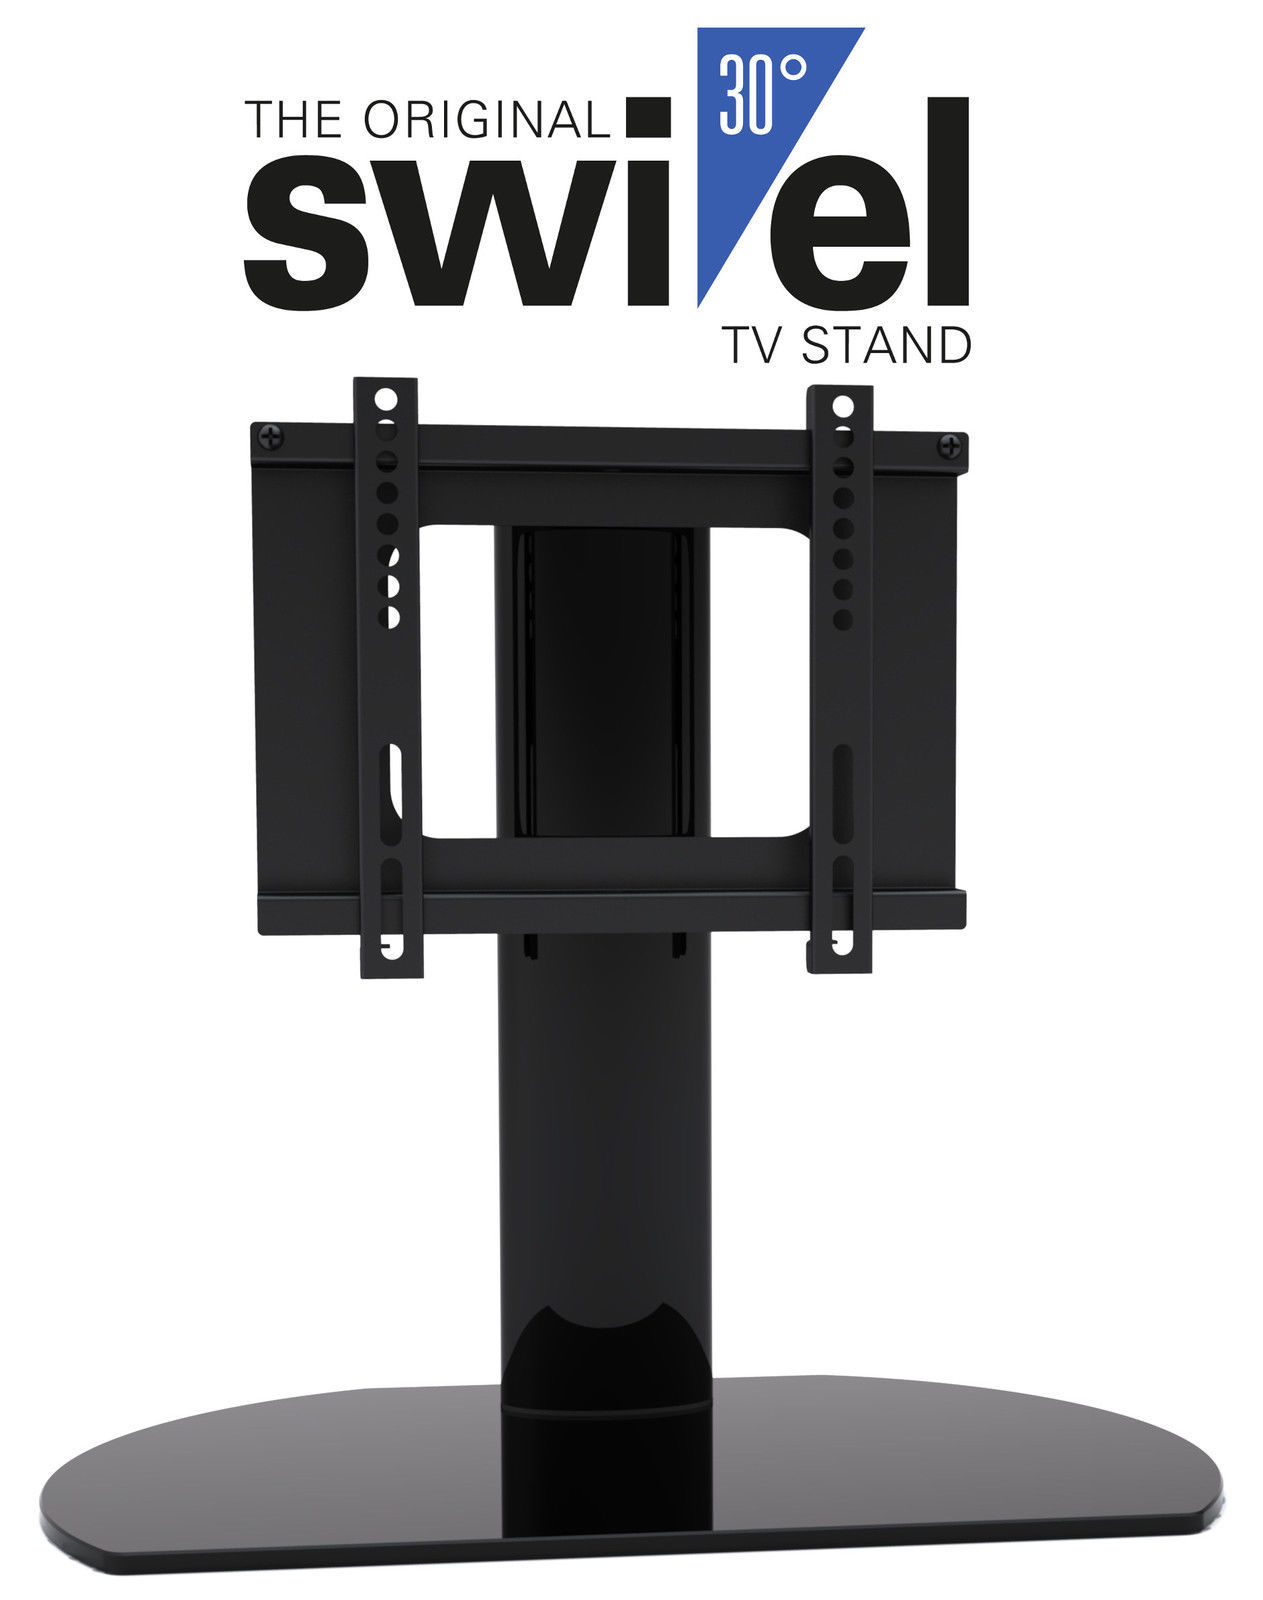 New Replacement Swivel TV Stand/Base for Magnavox 32MD357B/37